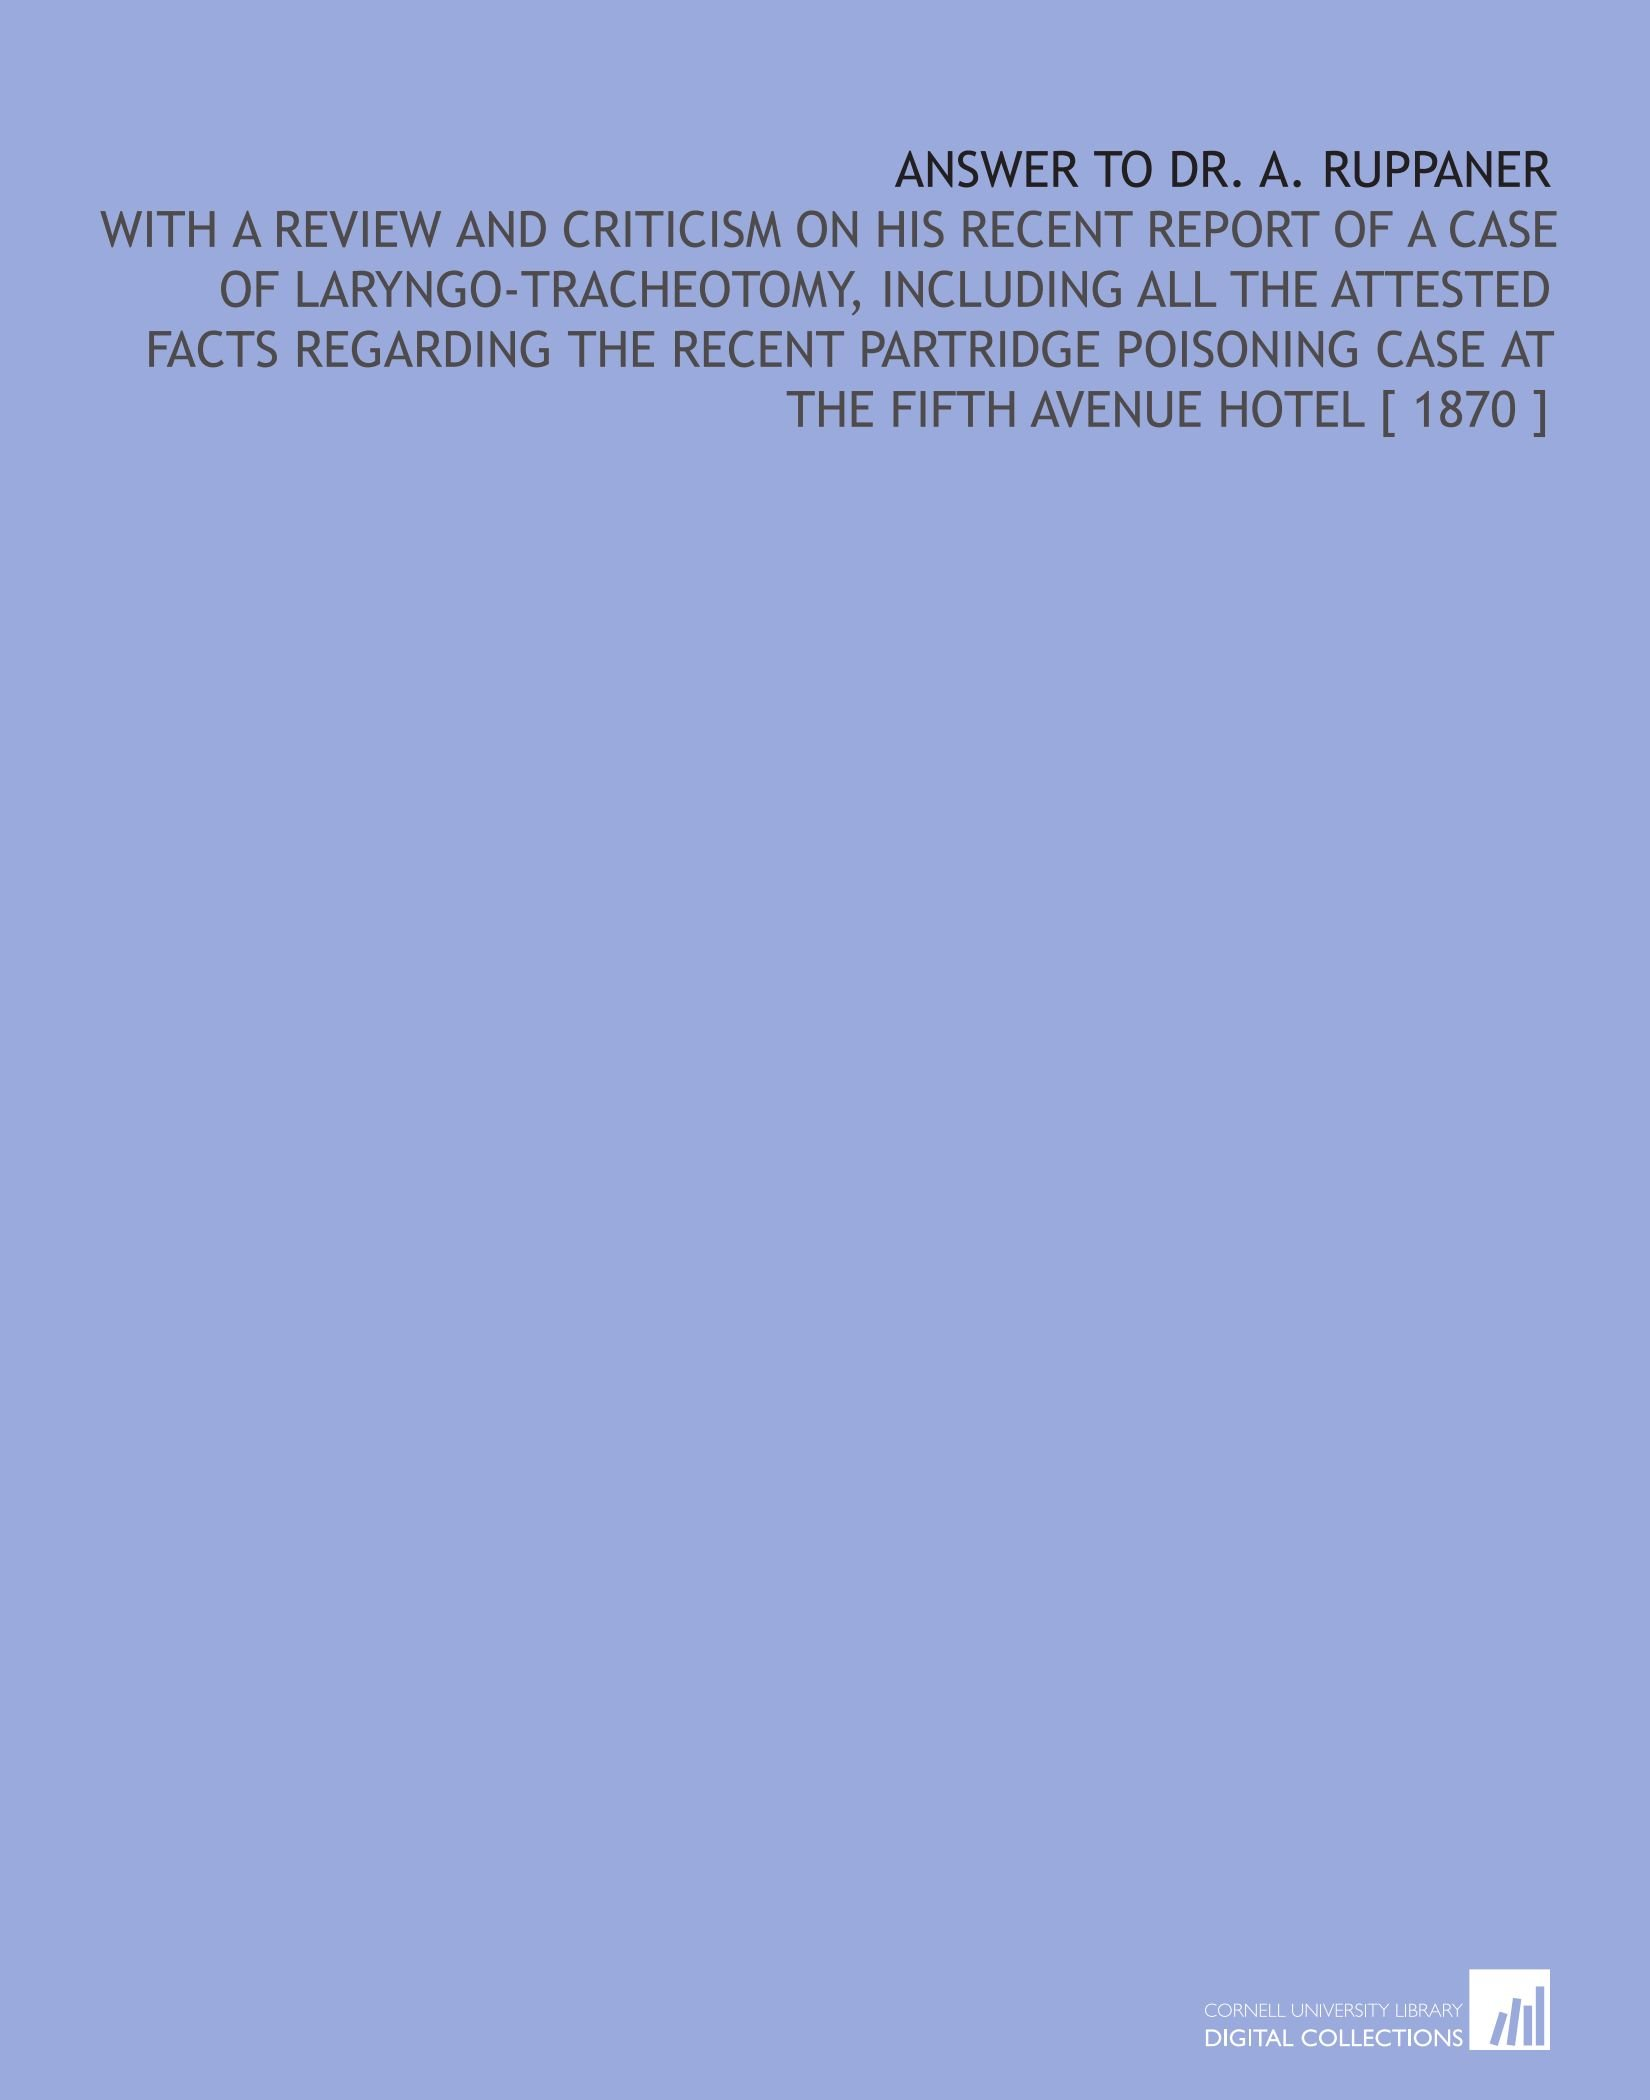 Download Answer to Dr. A. Ruppaner: With a Review and Criticism on His Recent Report of a Case of Laryngo-Tracheotomy, Including All the Attested Facts Case at the Fifth Avenue Hotel [ 1870 ] ebook